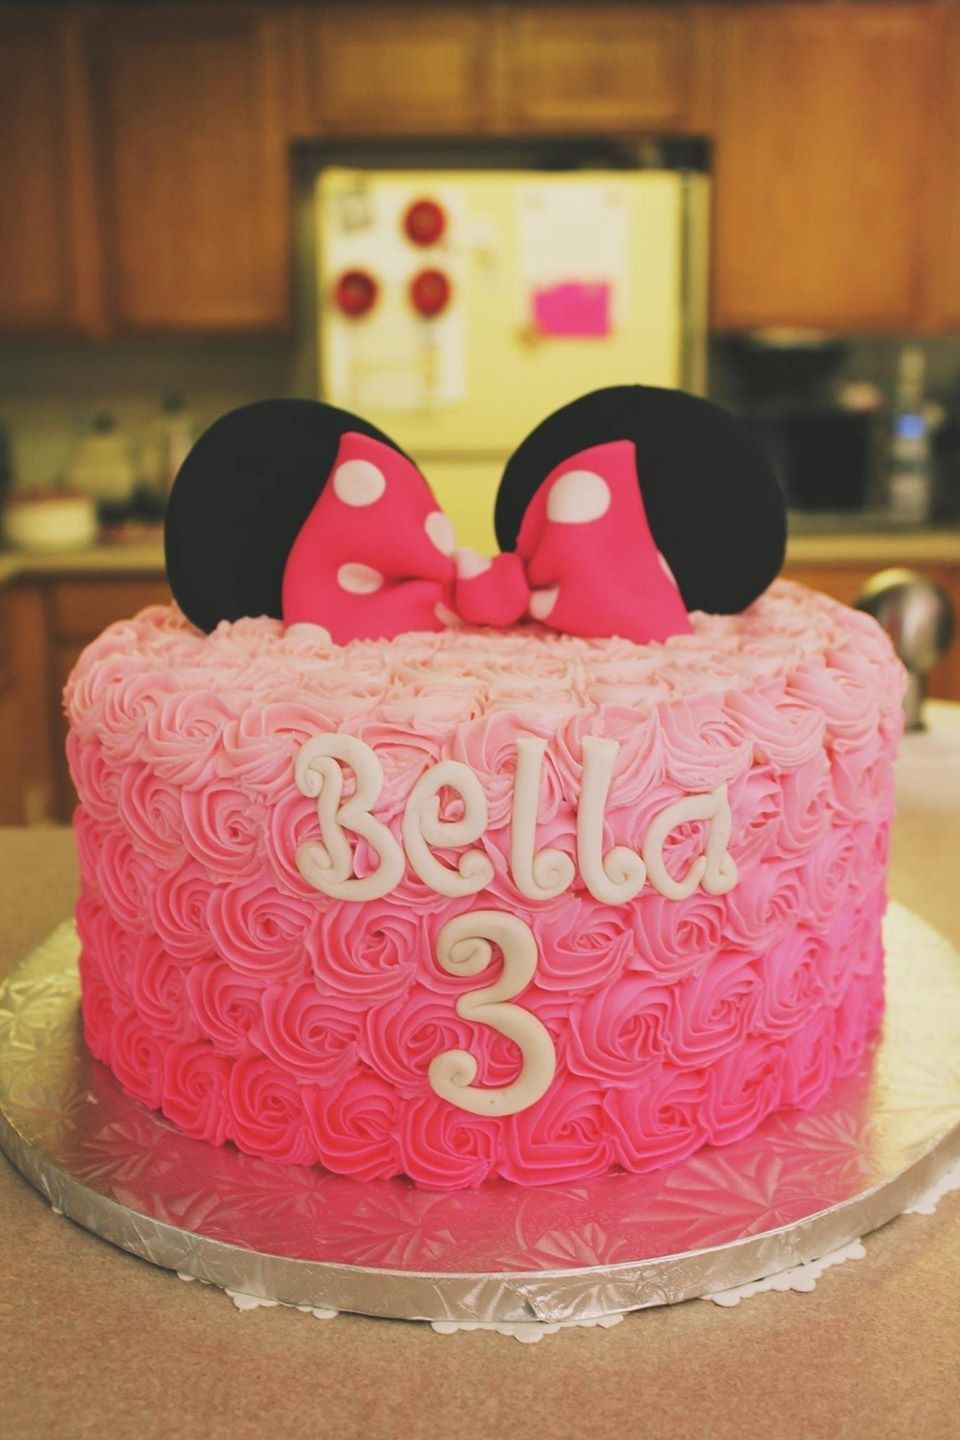 Fine My Daughters Bday Cake Minniemouse Ombre Rosette Pink Funny Birthday Cards Online Fluifree Goldxyz